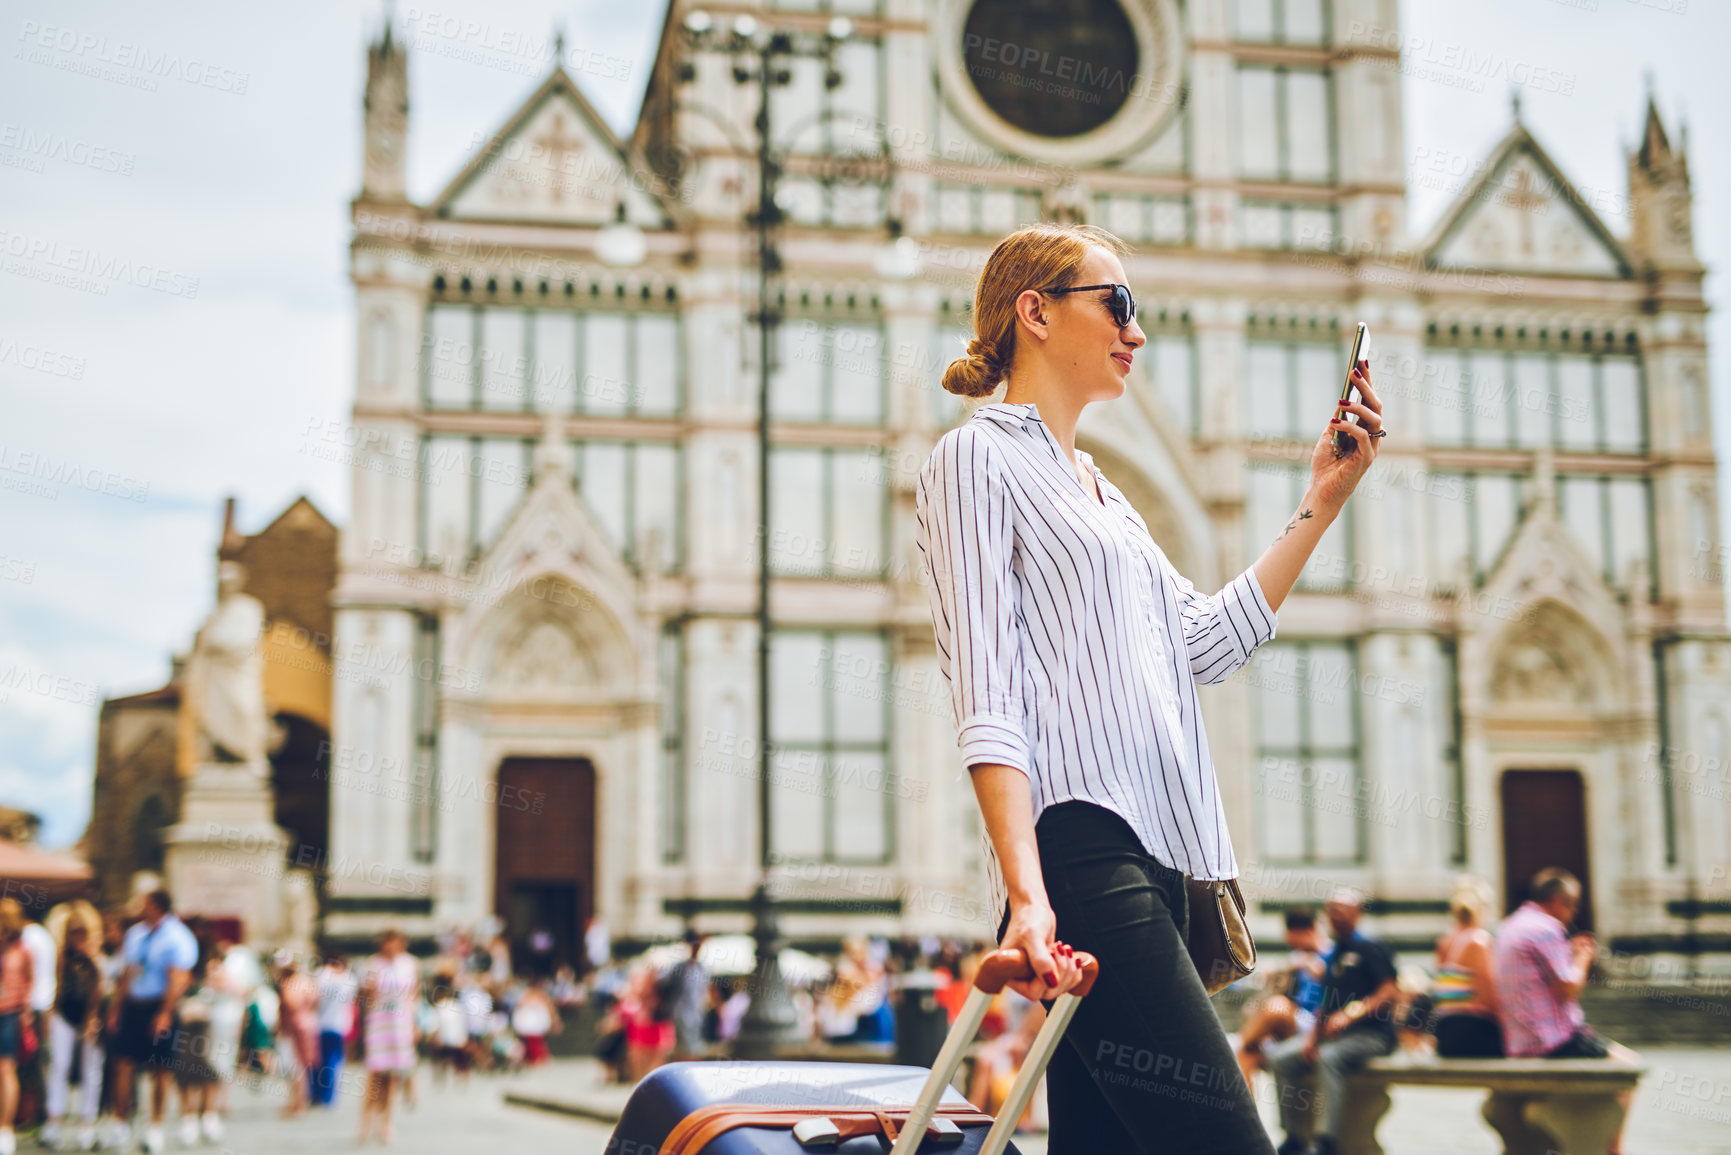 Buy stock photo Shot of a woman holding onto her luggage while using her cellphone in a foreign city